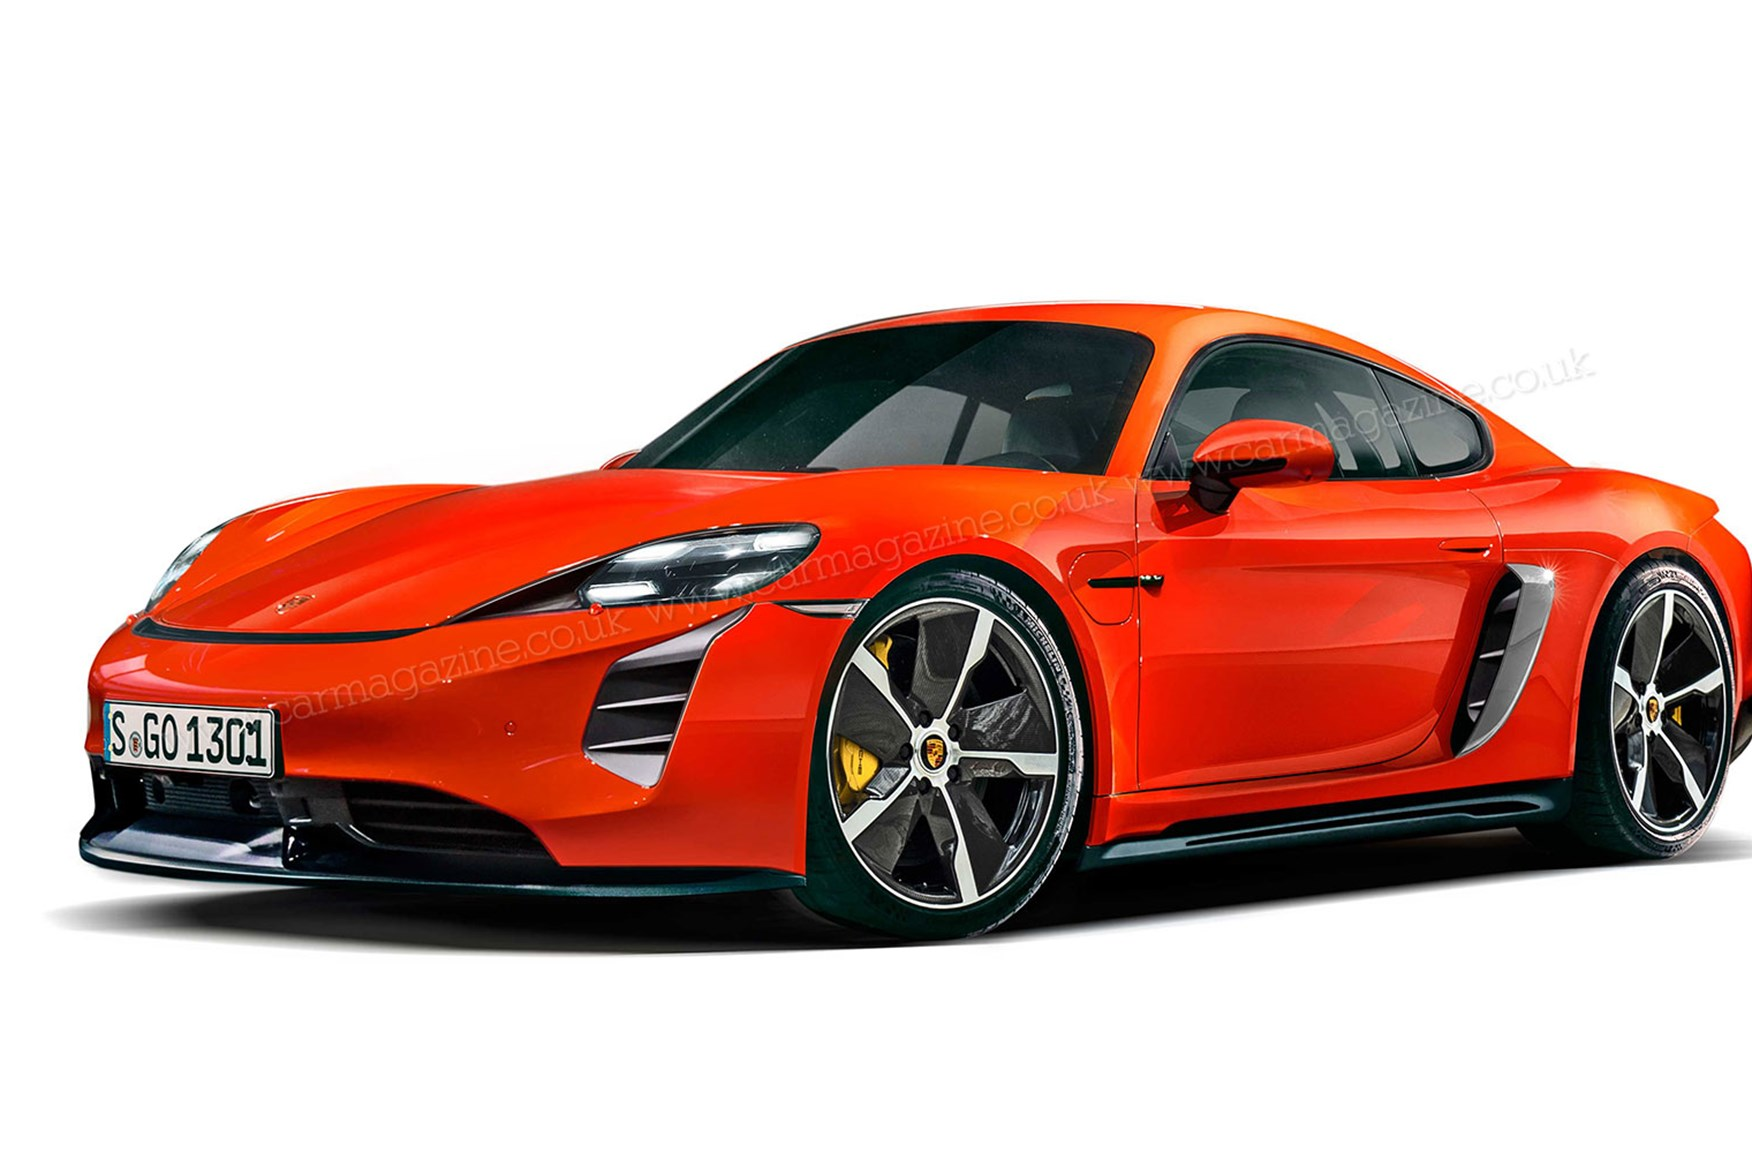 Heavy Batteries Stall Plan For Electric Porsche 718 Cayman And Boxster Car Magazine